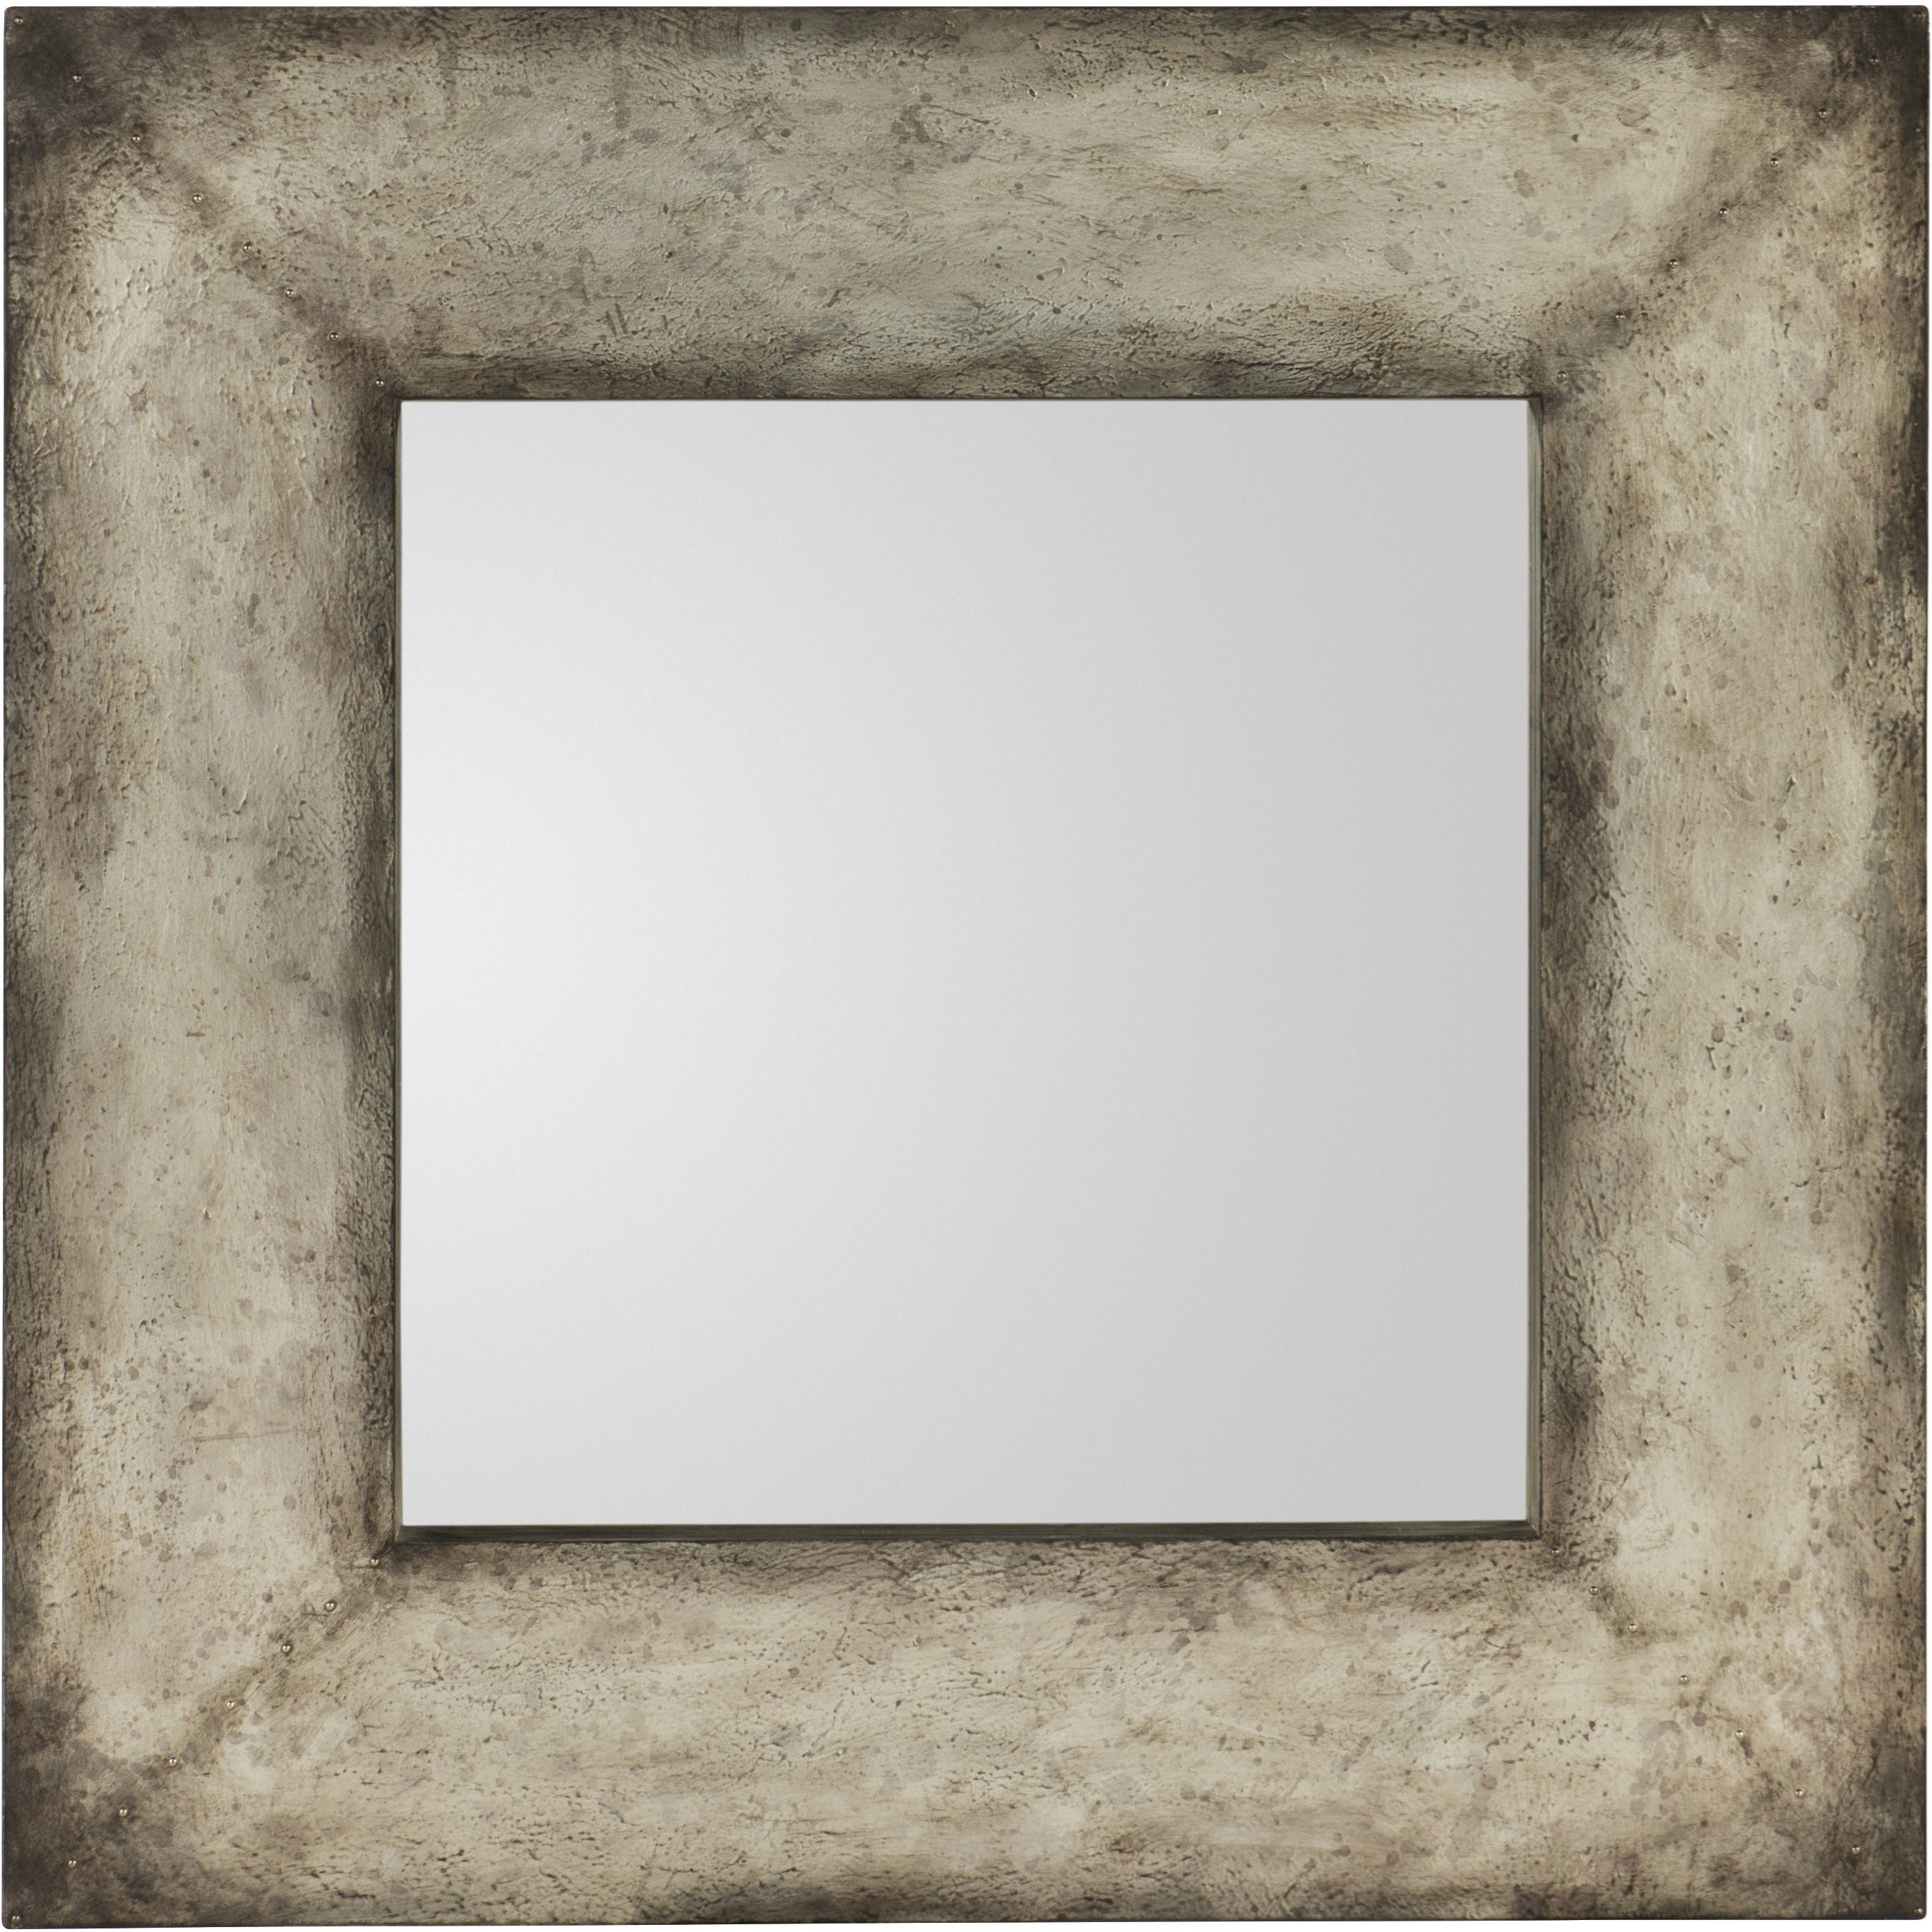 Ciao Bella Accent Mirror by Hooker Furniture at Gill Brothers Furniture